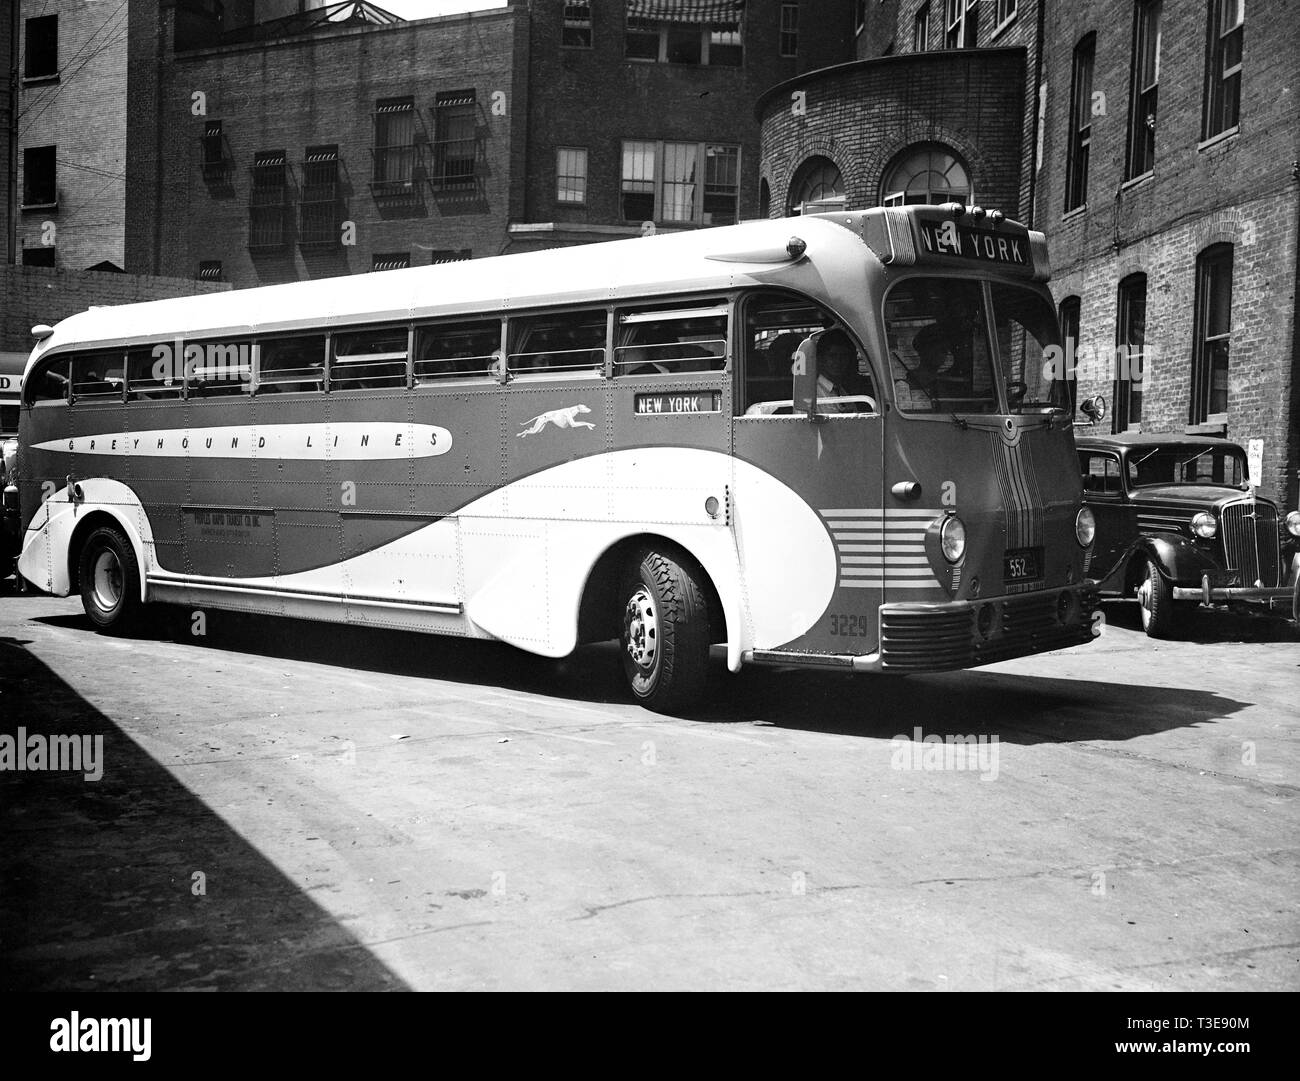 Bus Route Black and White Stock Photos & Images - Alamy